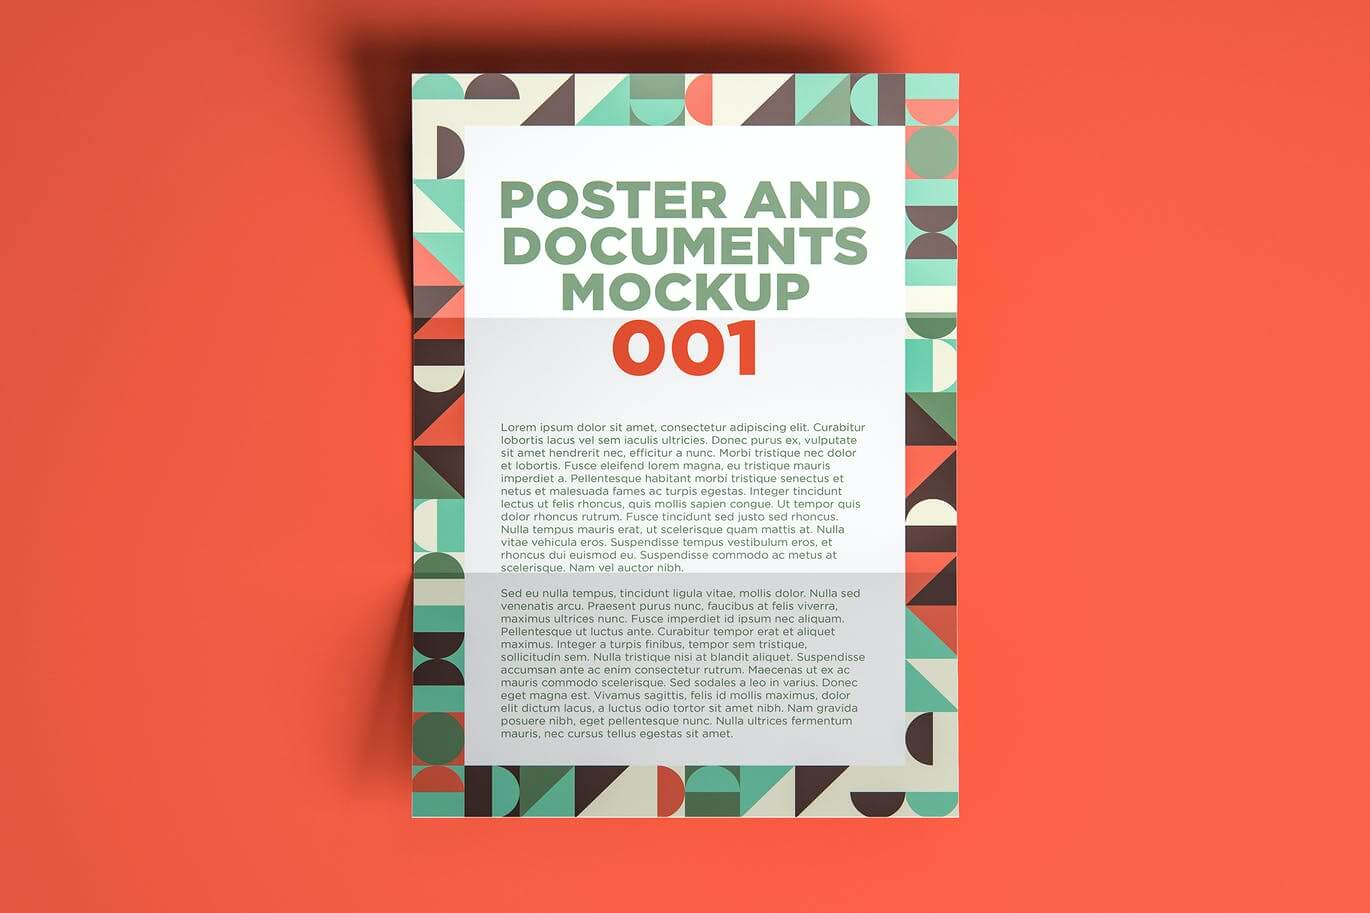 Poster And Documents Mockup 001